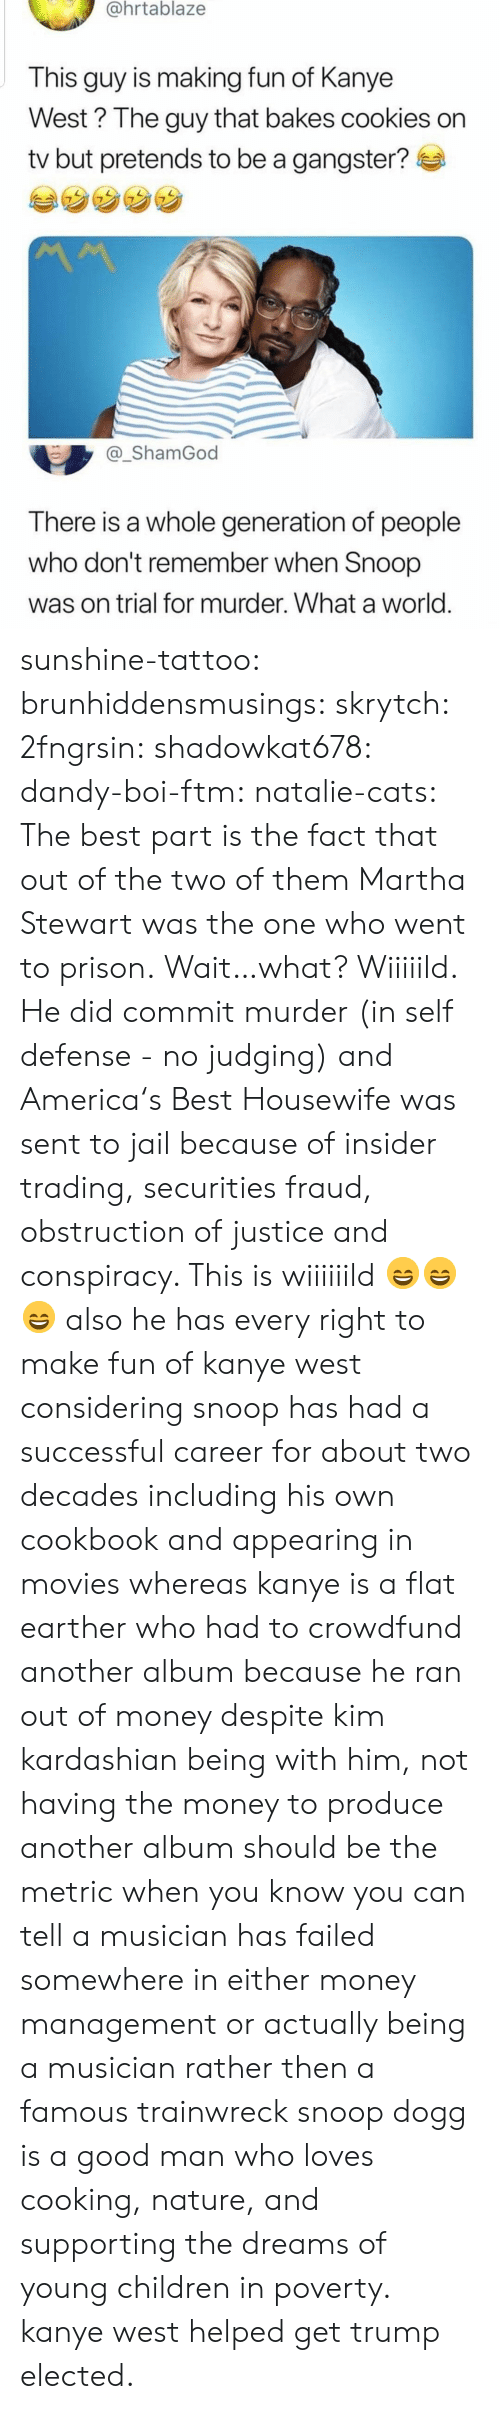 snoop dogg: @hrtablaze  This guy is making fun of Kanye  West? The guy that bakes cookies on  tv but pretends to be a gangster?  _ShamGod  There is a whole generation of people  who don't remember when Snoop  was on trial for murder. What a world sunshine-tattoo: brunhiddensmusings:  skrytch:  2fngrsin:  shadowkat678:  dandy-boi-ftm:   natalie-cats:   The best part is the fact that out of the two of them Martha Stewart was the one who went to prison.   Wait…what?   Wiiiiild. He did commit murder (in self defense - no judging) and America's Best Housewife was sent to jail because of insider trading, securities fraud, obstruction of justice and conspiracy. This is wiiiiiild 😄😄😄    also he has every right to make fun of kanye west considering snoop has had a successful career for about two decades including his own cookbook and appearing in movies whereas kanye is a flat earther who had to crowdfund another album because he ran out of money despite kim kardashian being with him, not having the money to produce another album should be the metric when you know you can tell a musician has failed somewhere in either money management or actually being a musician rather then a famous trainwreck   snoop dogg is a good man who loves cooking, nature, and supporting the dreams of young children in poverty. kanye west helped get trump elected.